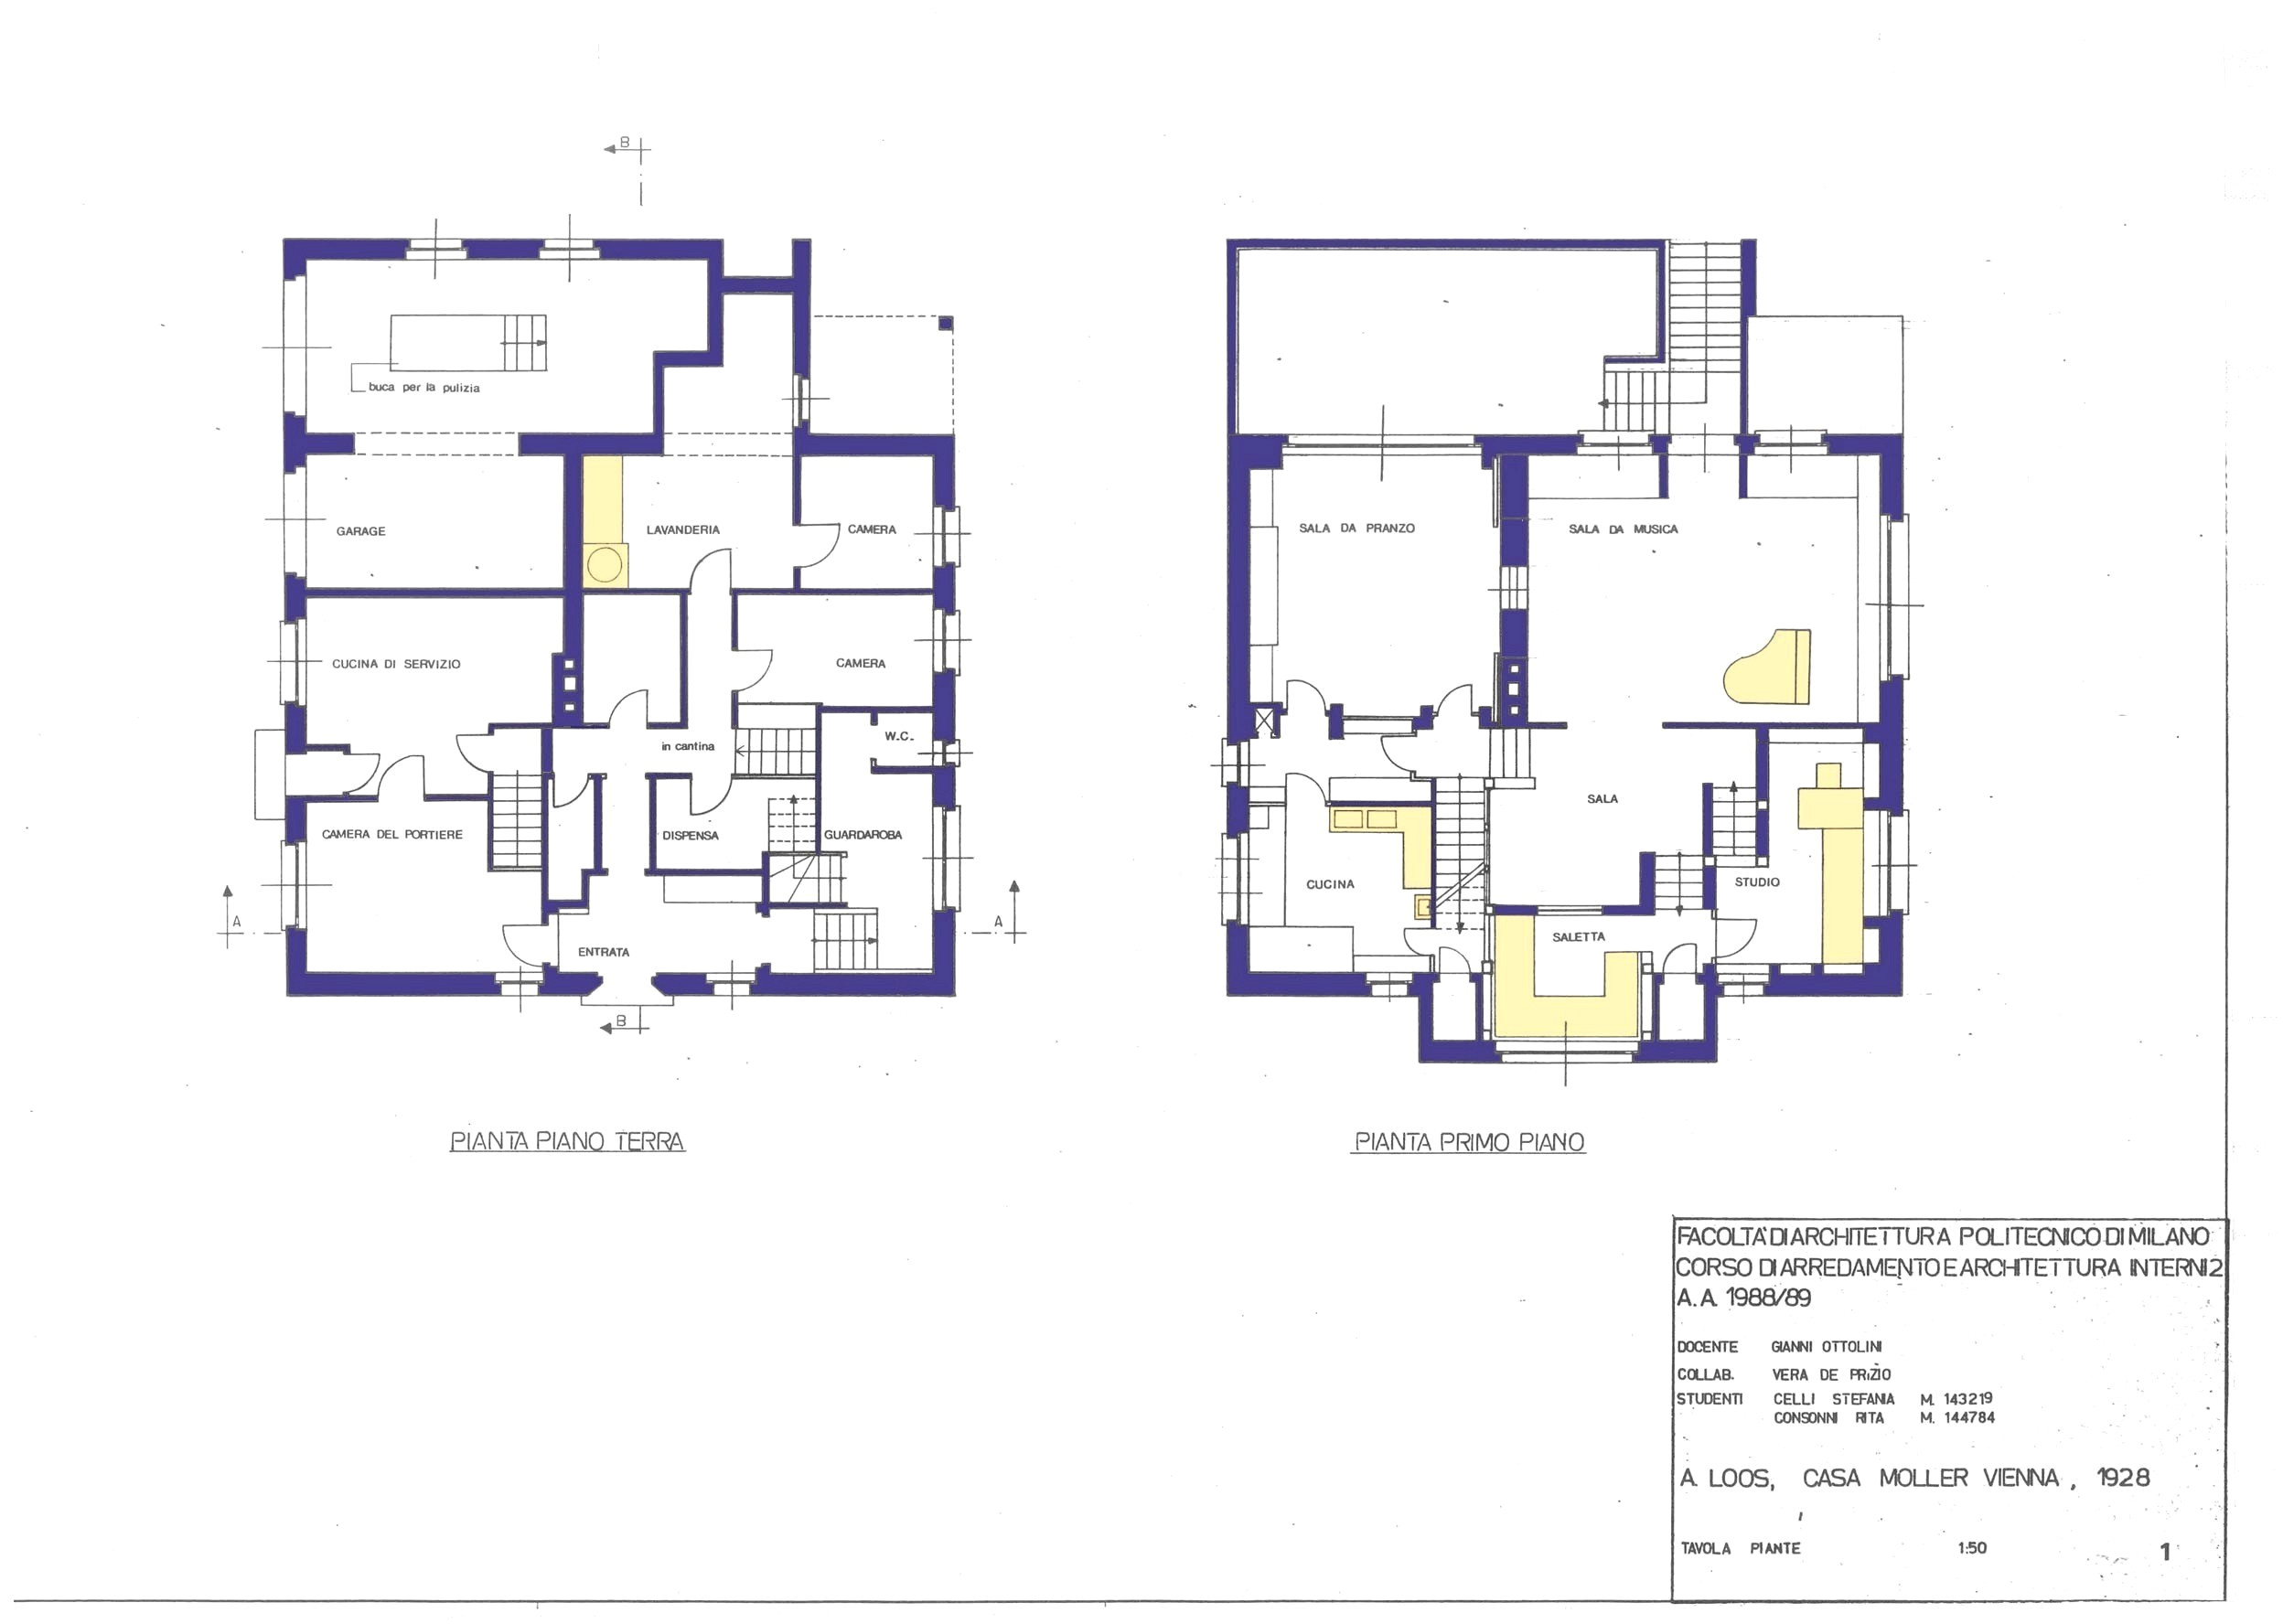 paras homes floor plans luxury 16 elegant design your own home plans